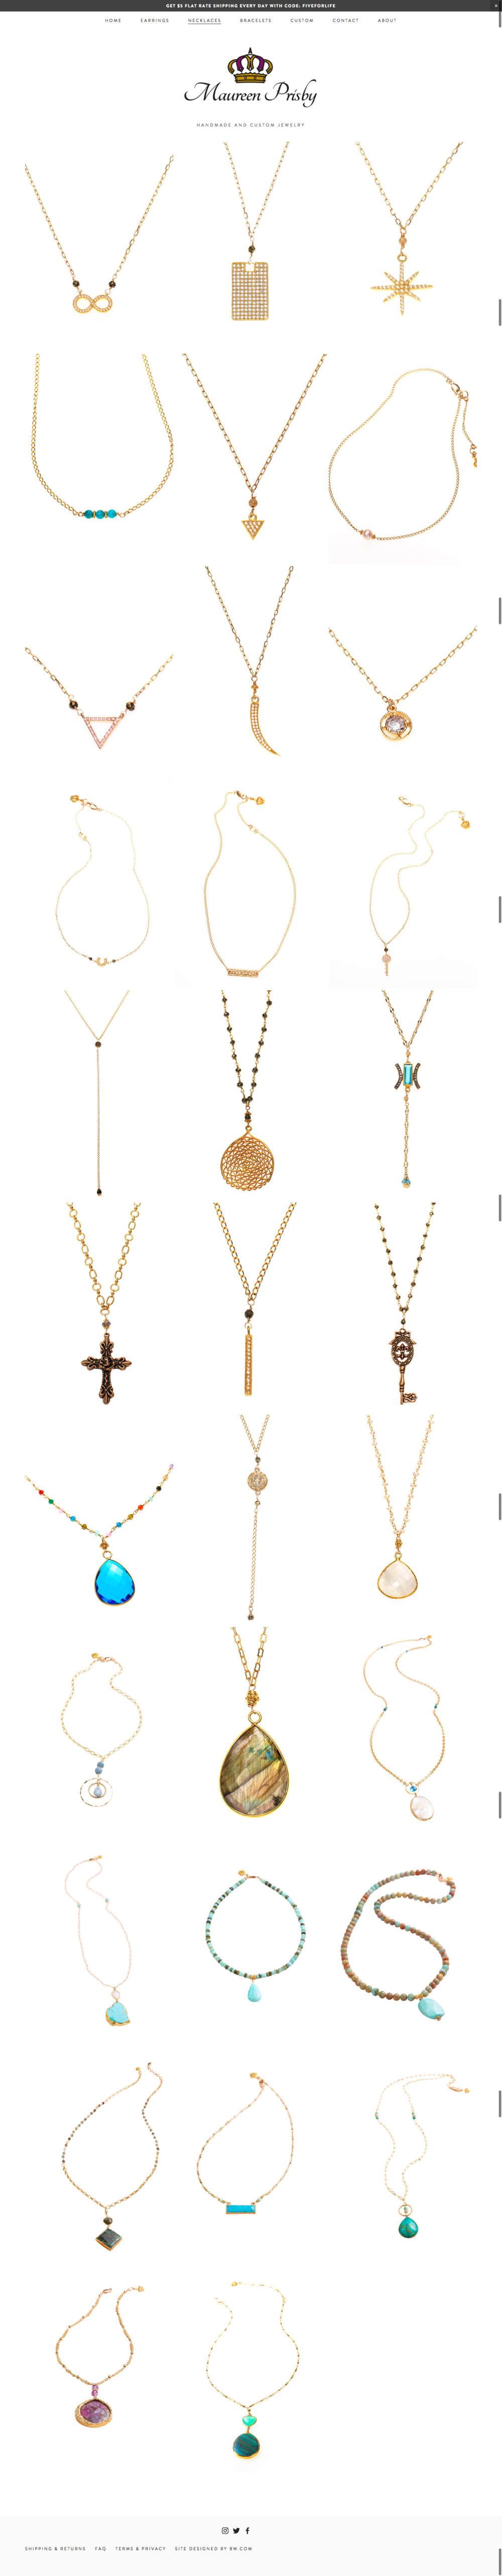 After- Category Page, Necklaces